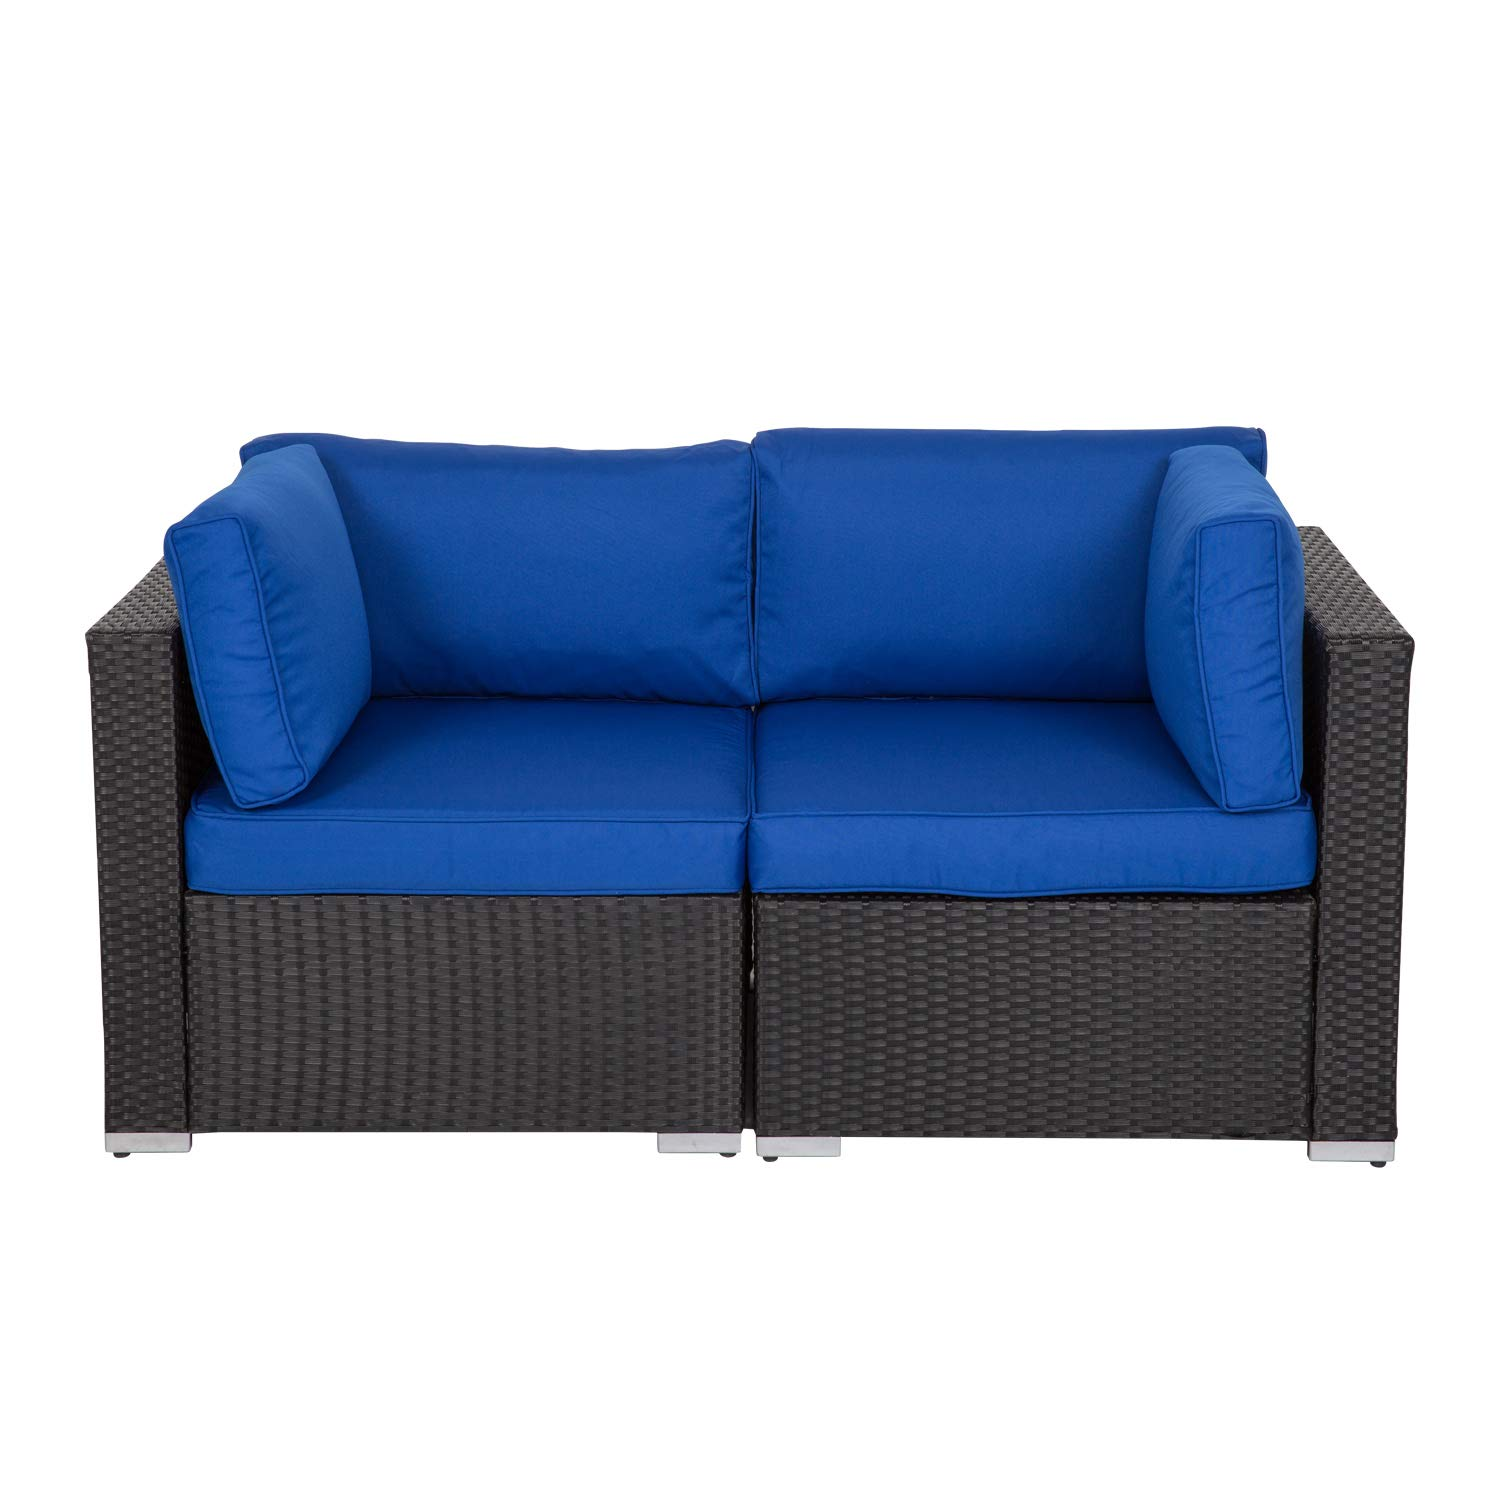 Kinbor Patio Wicker Furniture Outdoor Garden Love Seat Chair Couch Sofa Black with Royal Blue Cushion by Kinbor